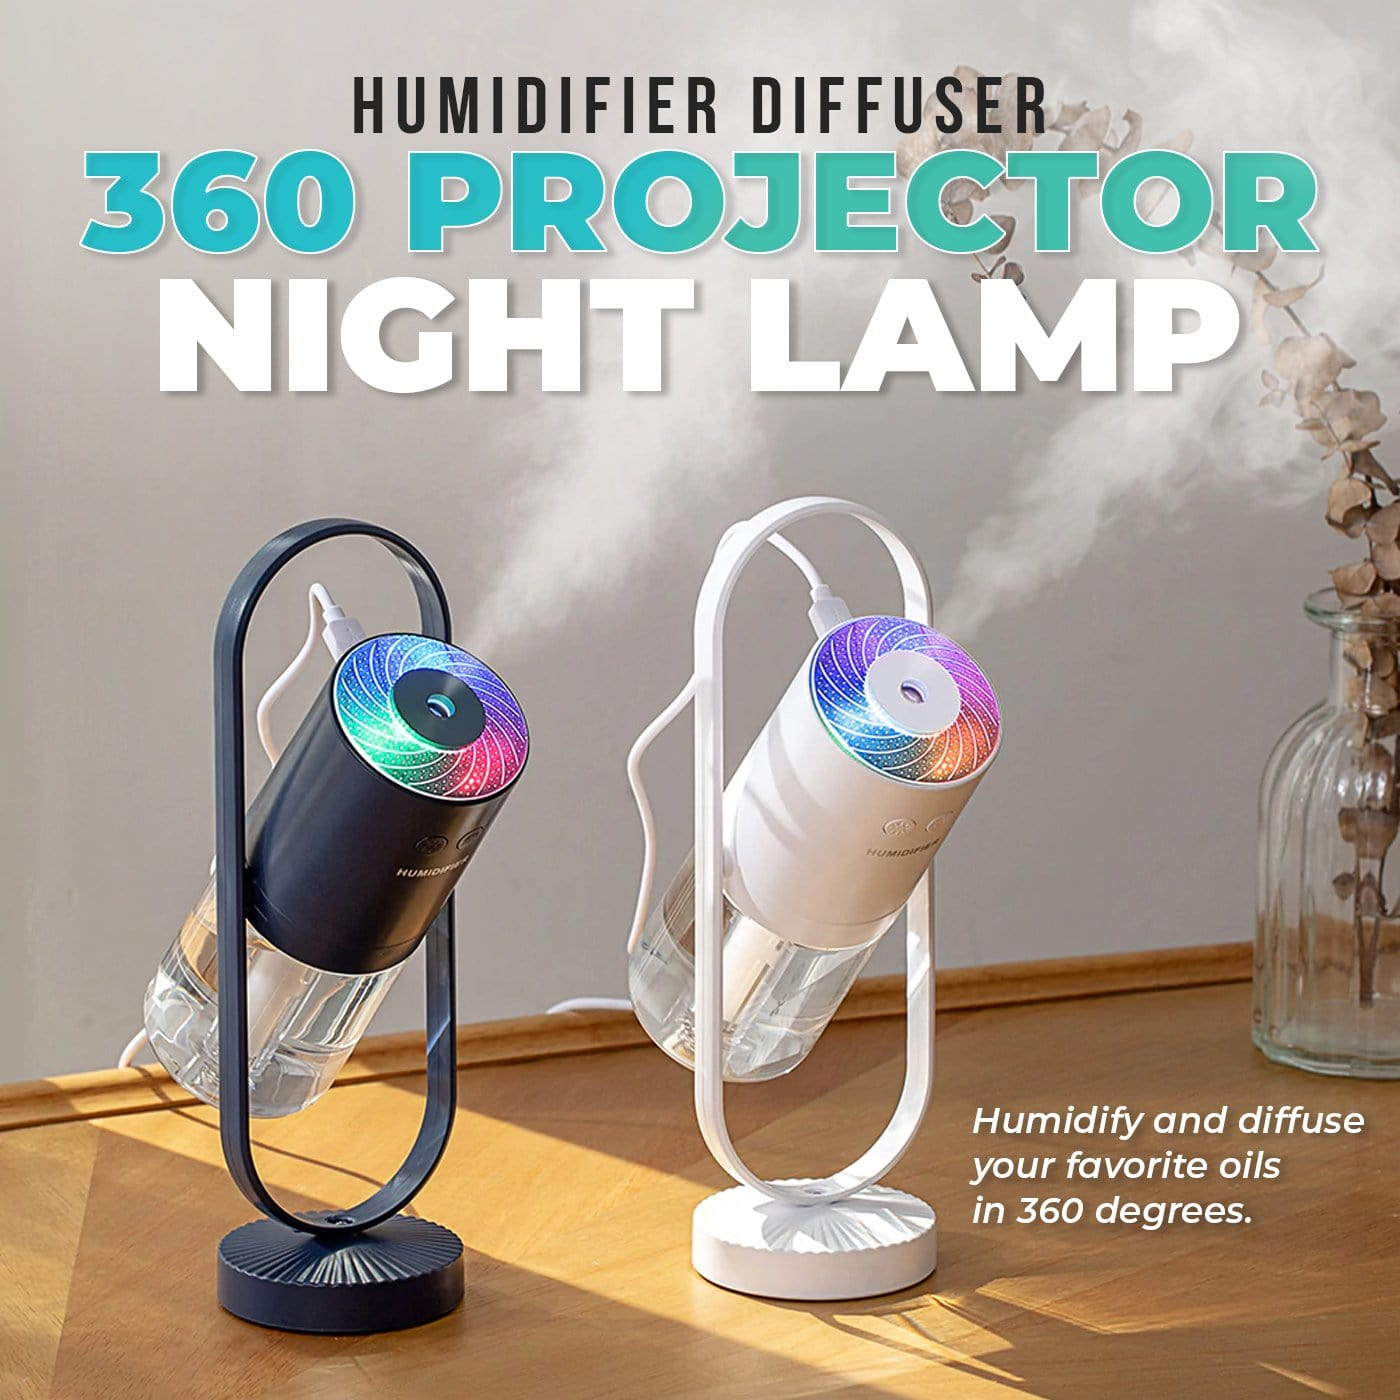 Humidifier Diffuser 360 Projector Night Lamp